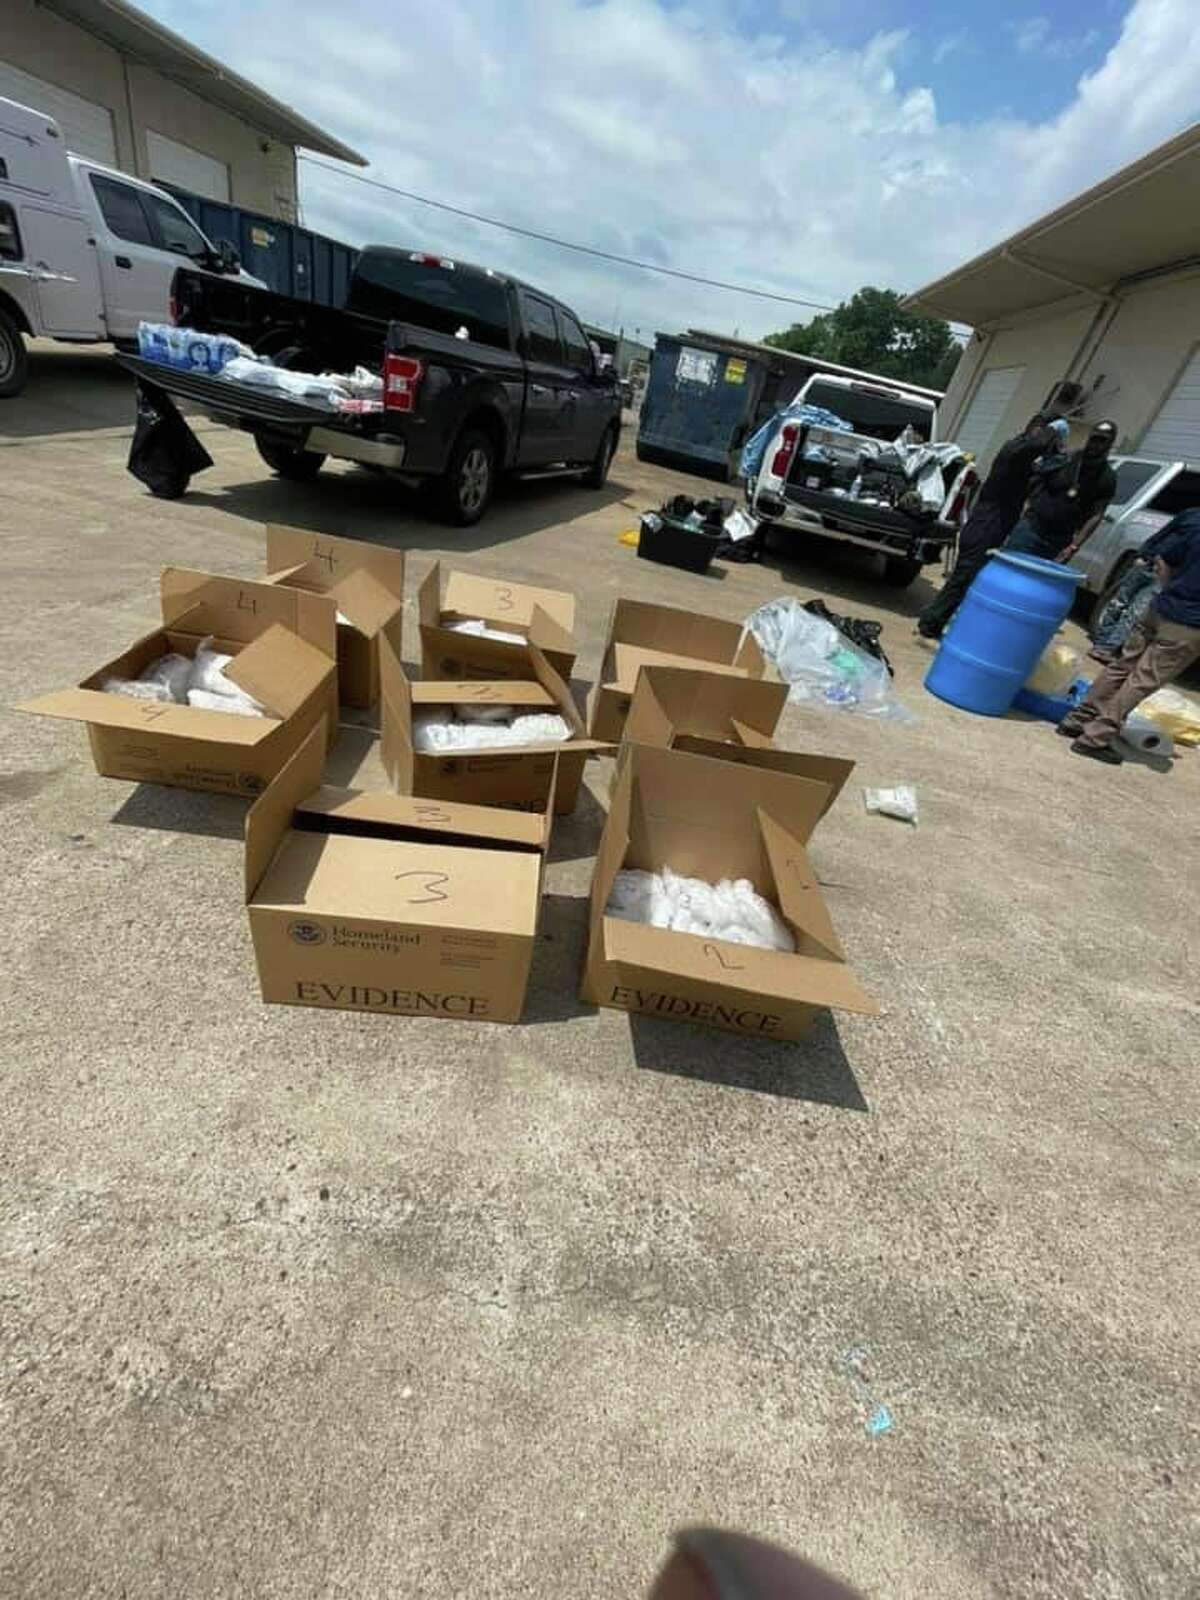 More than $3 million in methamphetamine was seized by deputies, authorities announced Thursday.